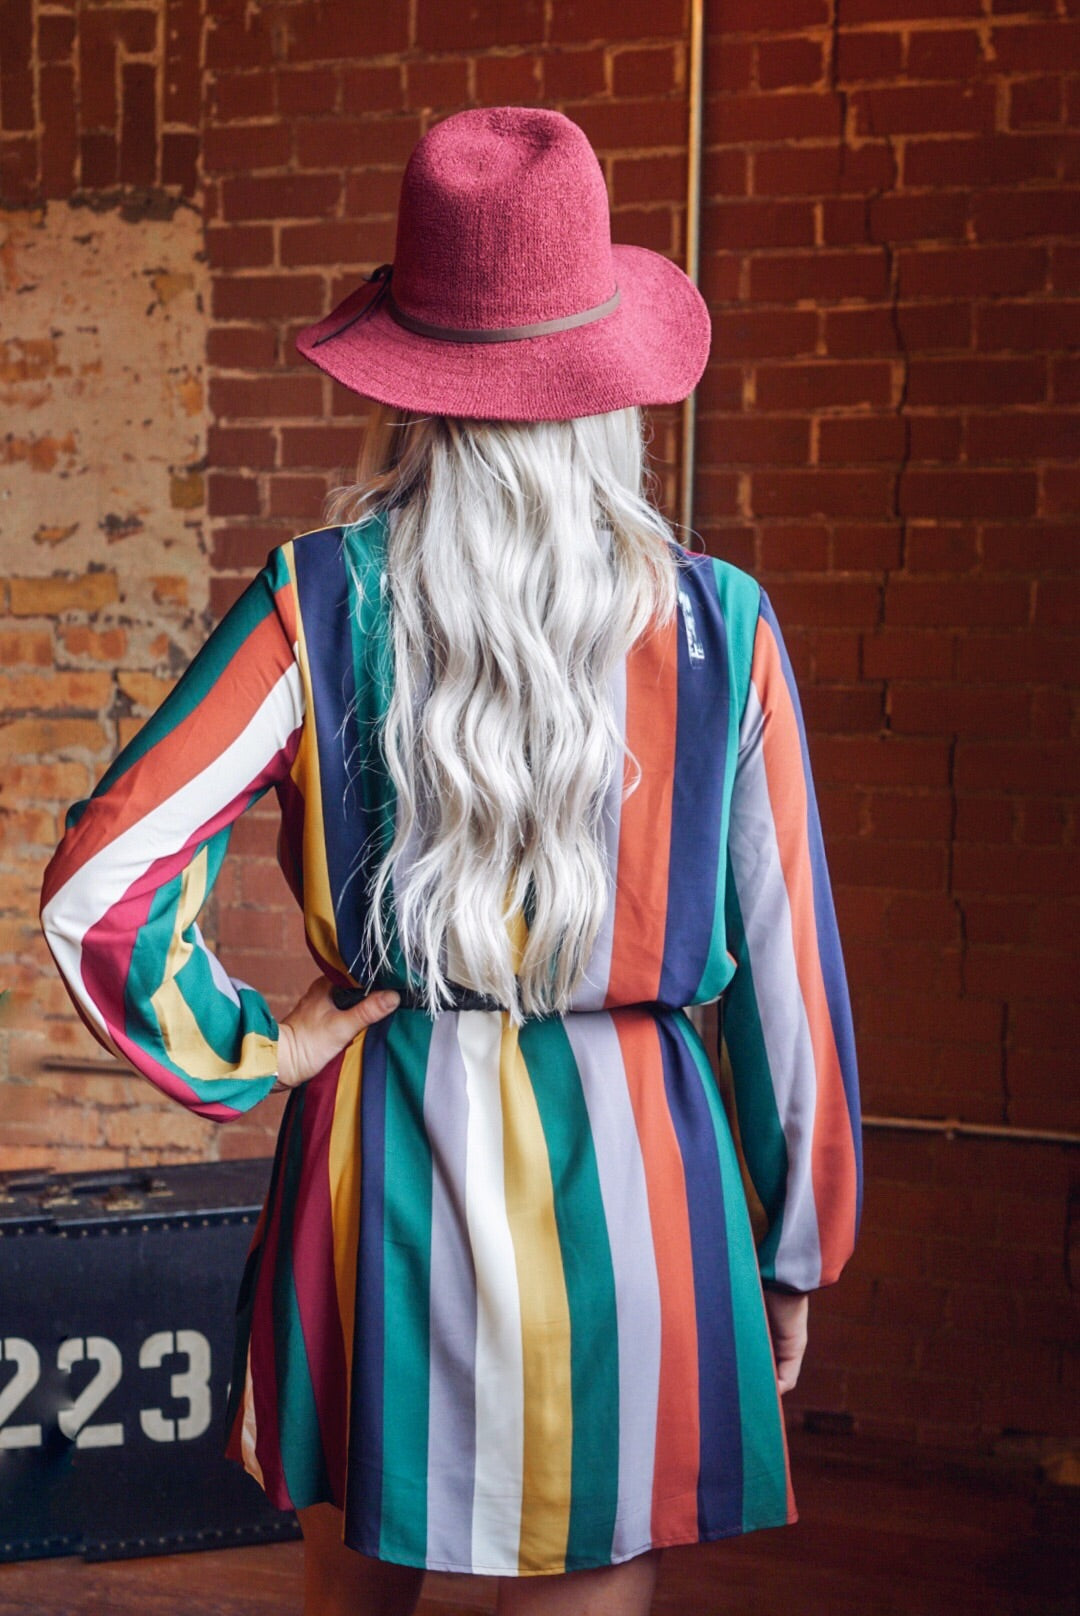 Shirley Striped Dress